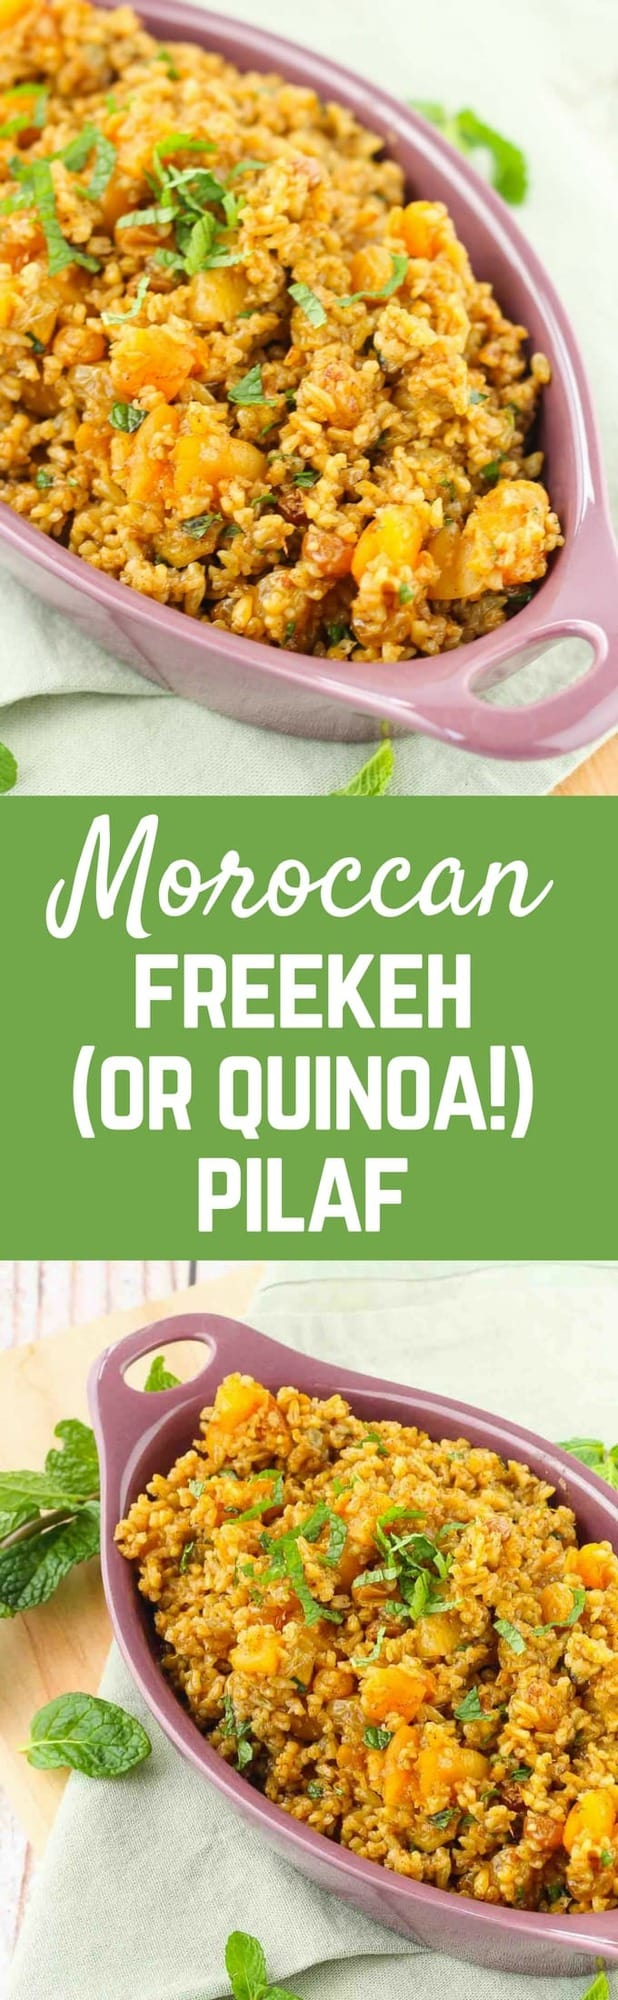 Some days call for ditching plain rice and giving something more exciting a try. This Moroccan freekeh pilaf is just the thing you need. Full of warm spices and sweet dried fruit, it will be the perfect side to your meal. Get the easy recipe on RachelCooks.com!